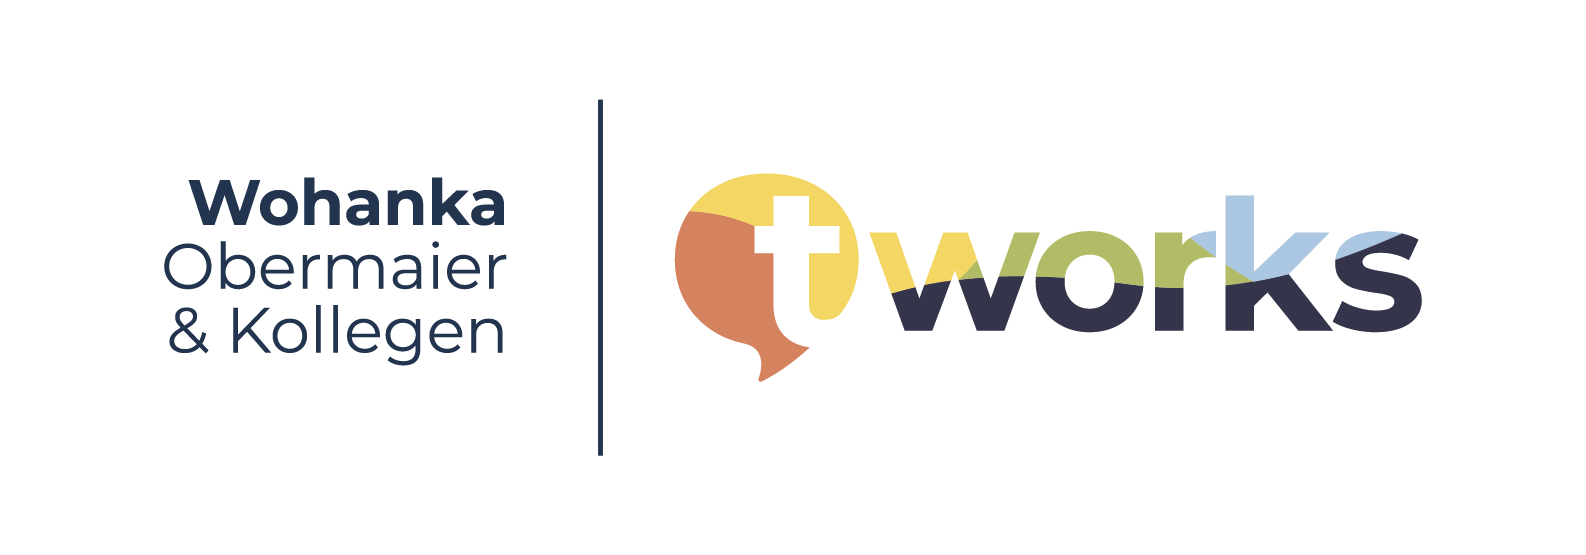 Wohanka, Obermaier & Kollegen - The Translation Service Provider - A t'works Company